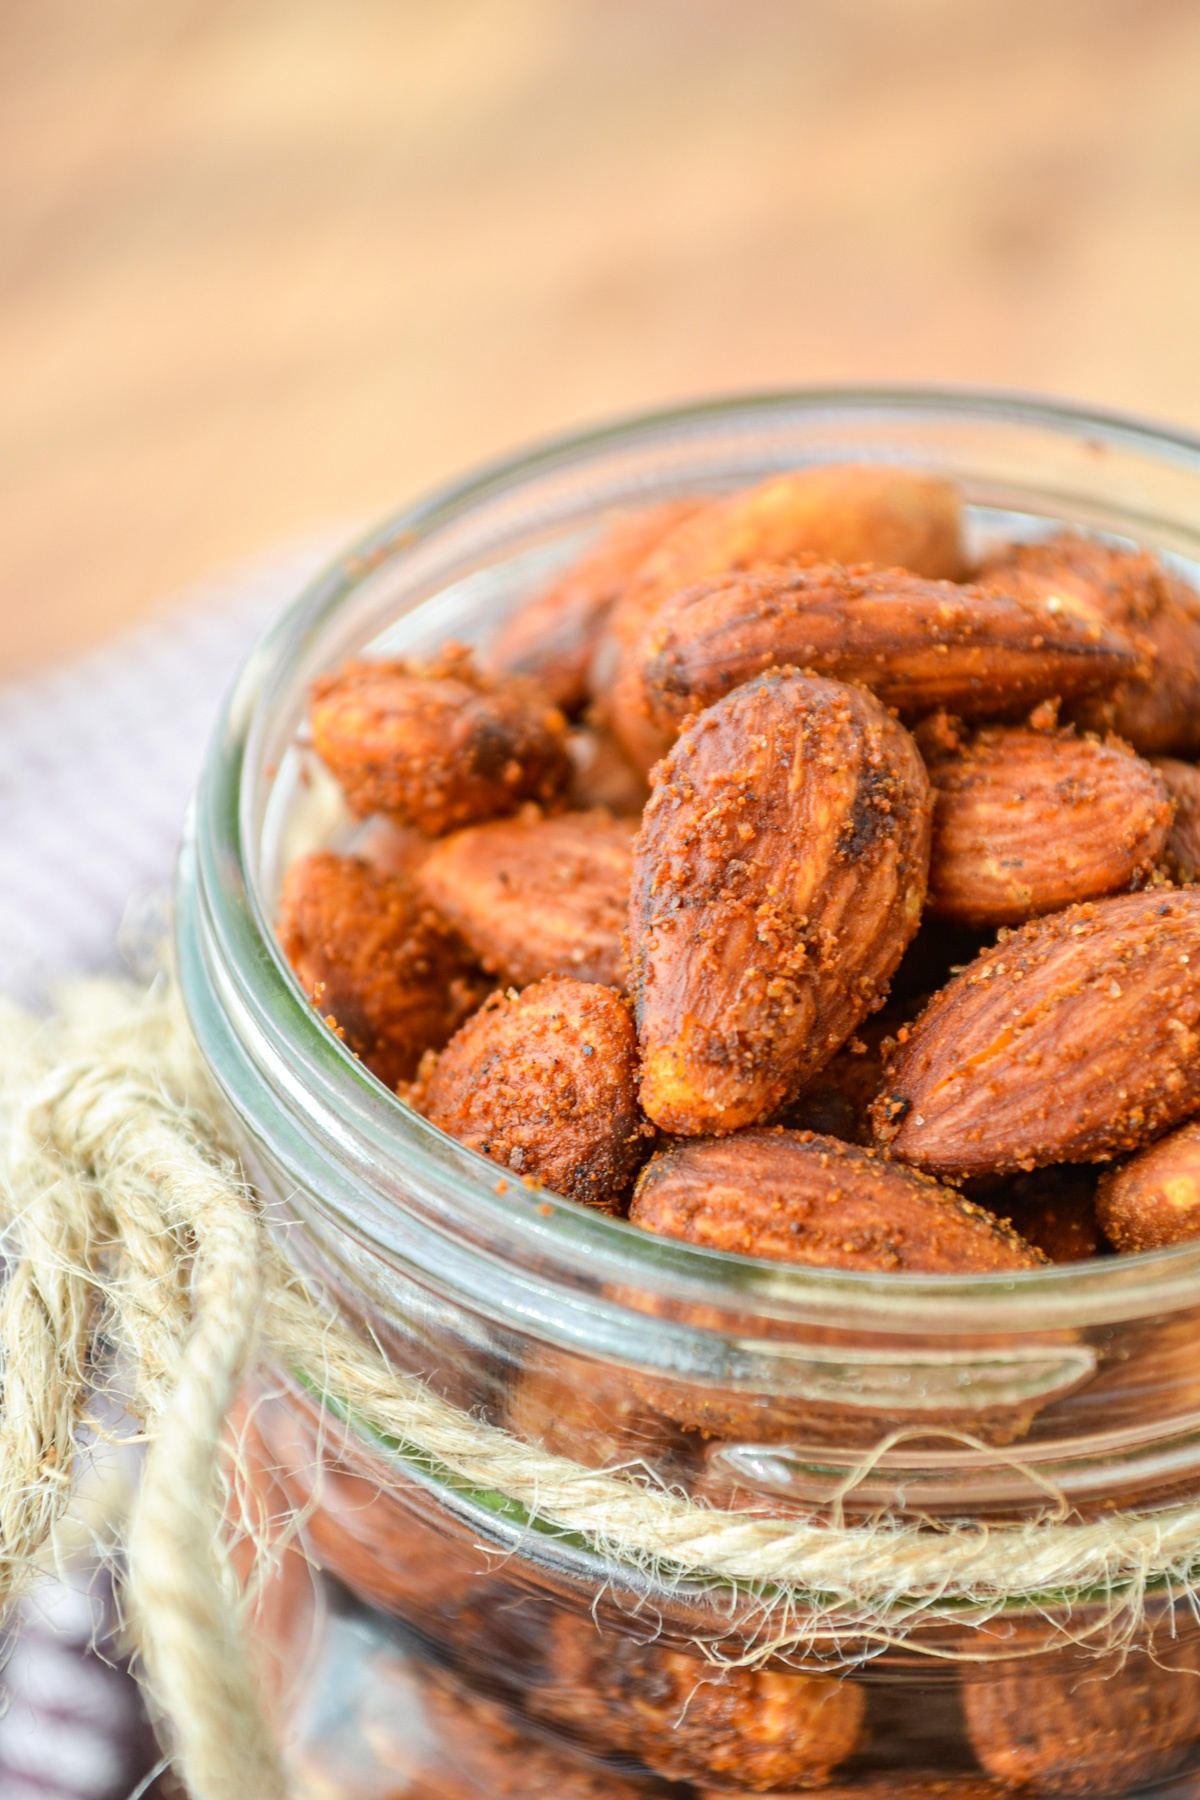 A pint jar filled with roasted almonds.